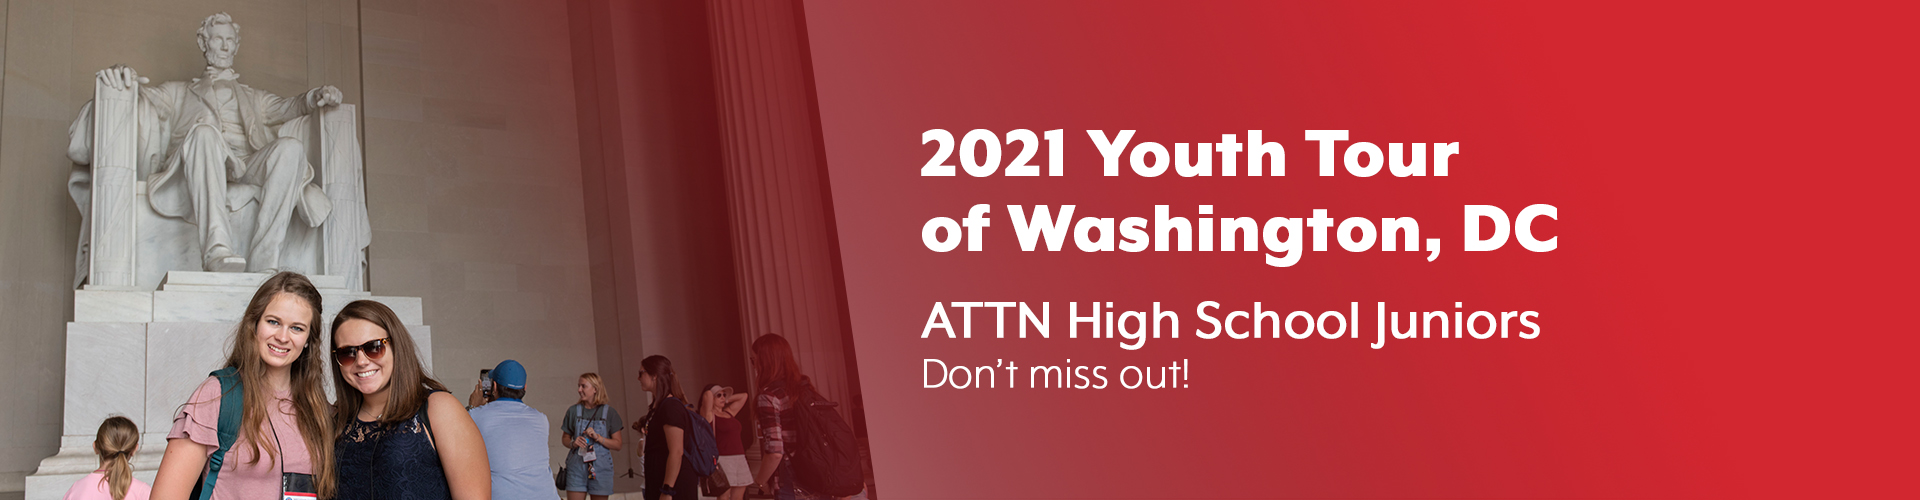 2021 Youth Tour